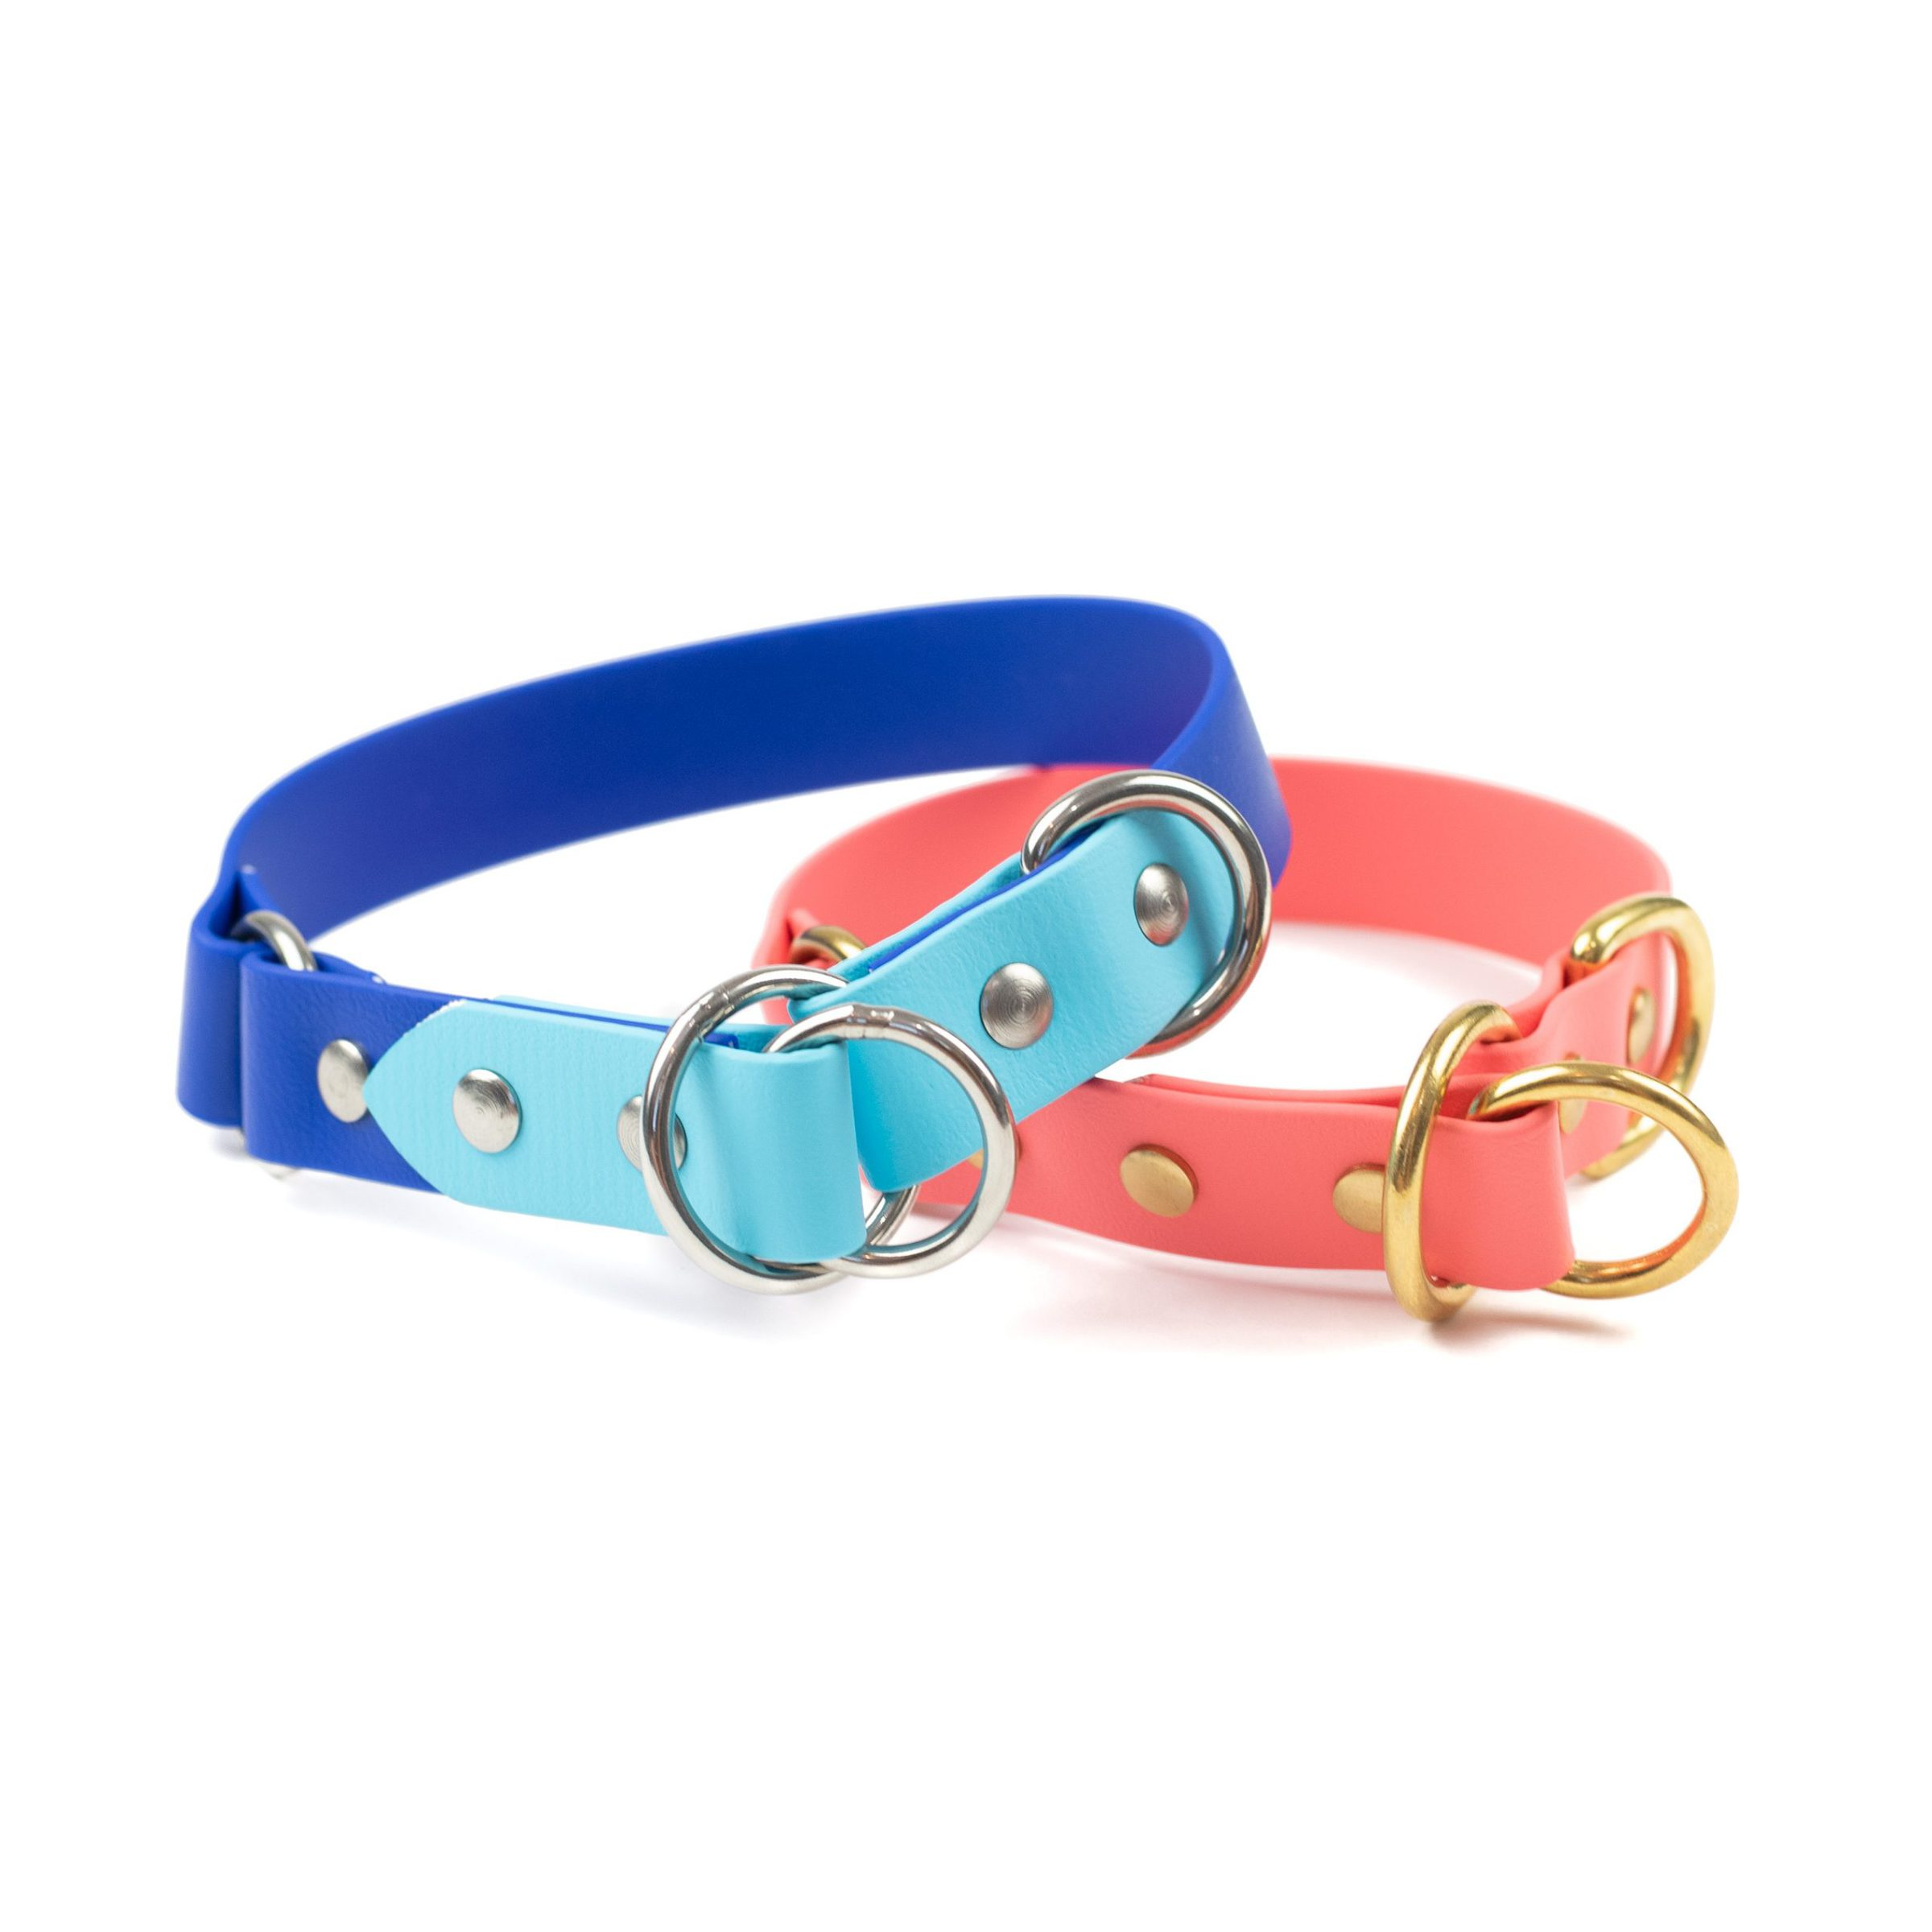 "Blue tone and coral 1"" o-ring limited slip collar make from biothane"